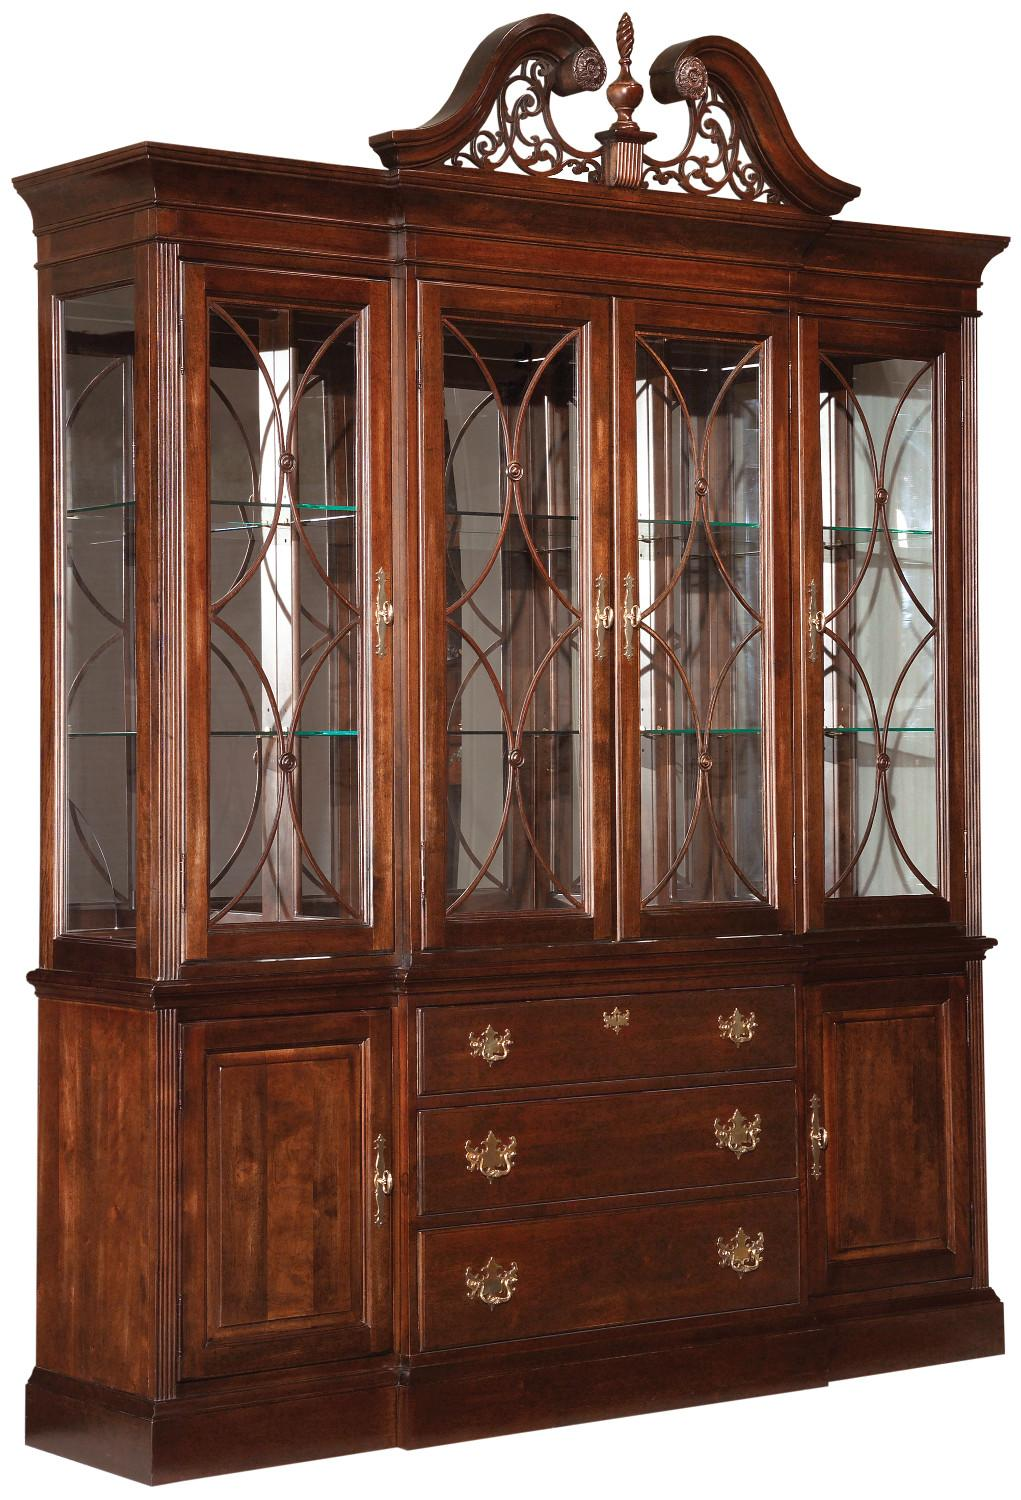 Superbe Carriage House Breakfront China Cabinet By Kincaid Furniture